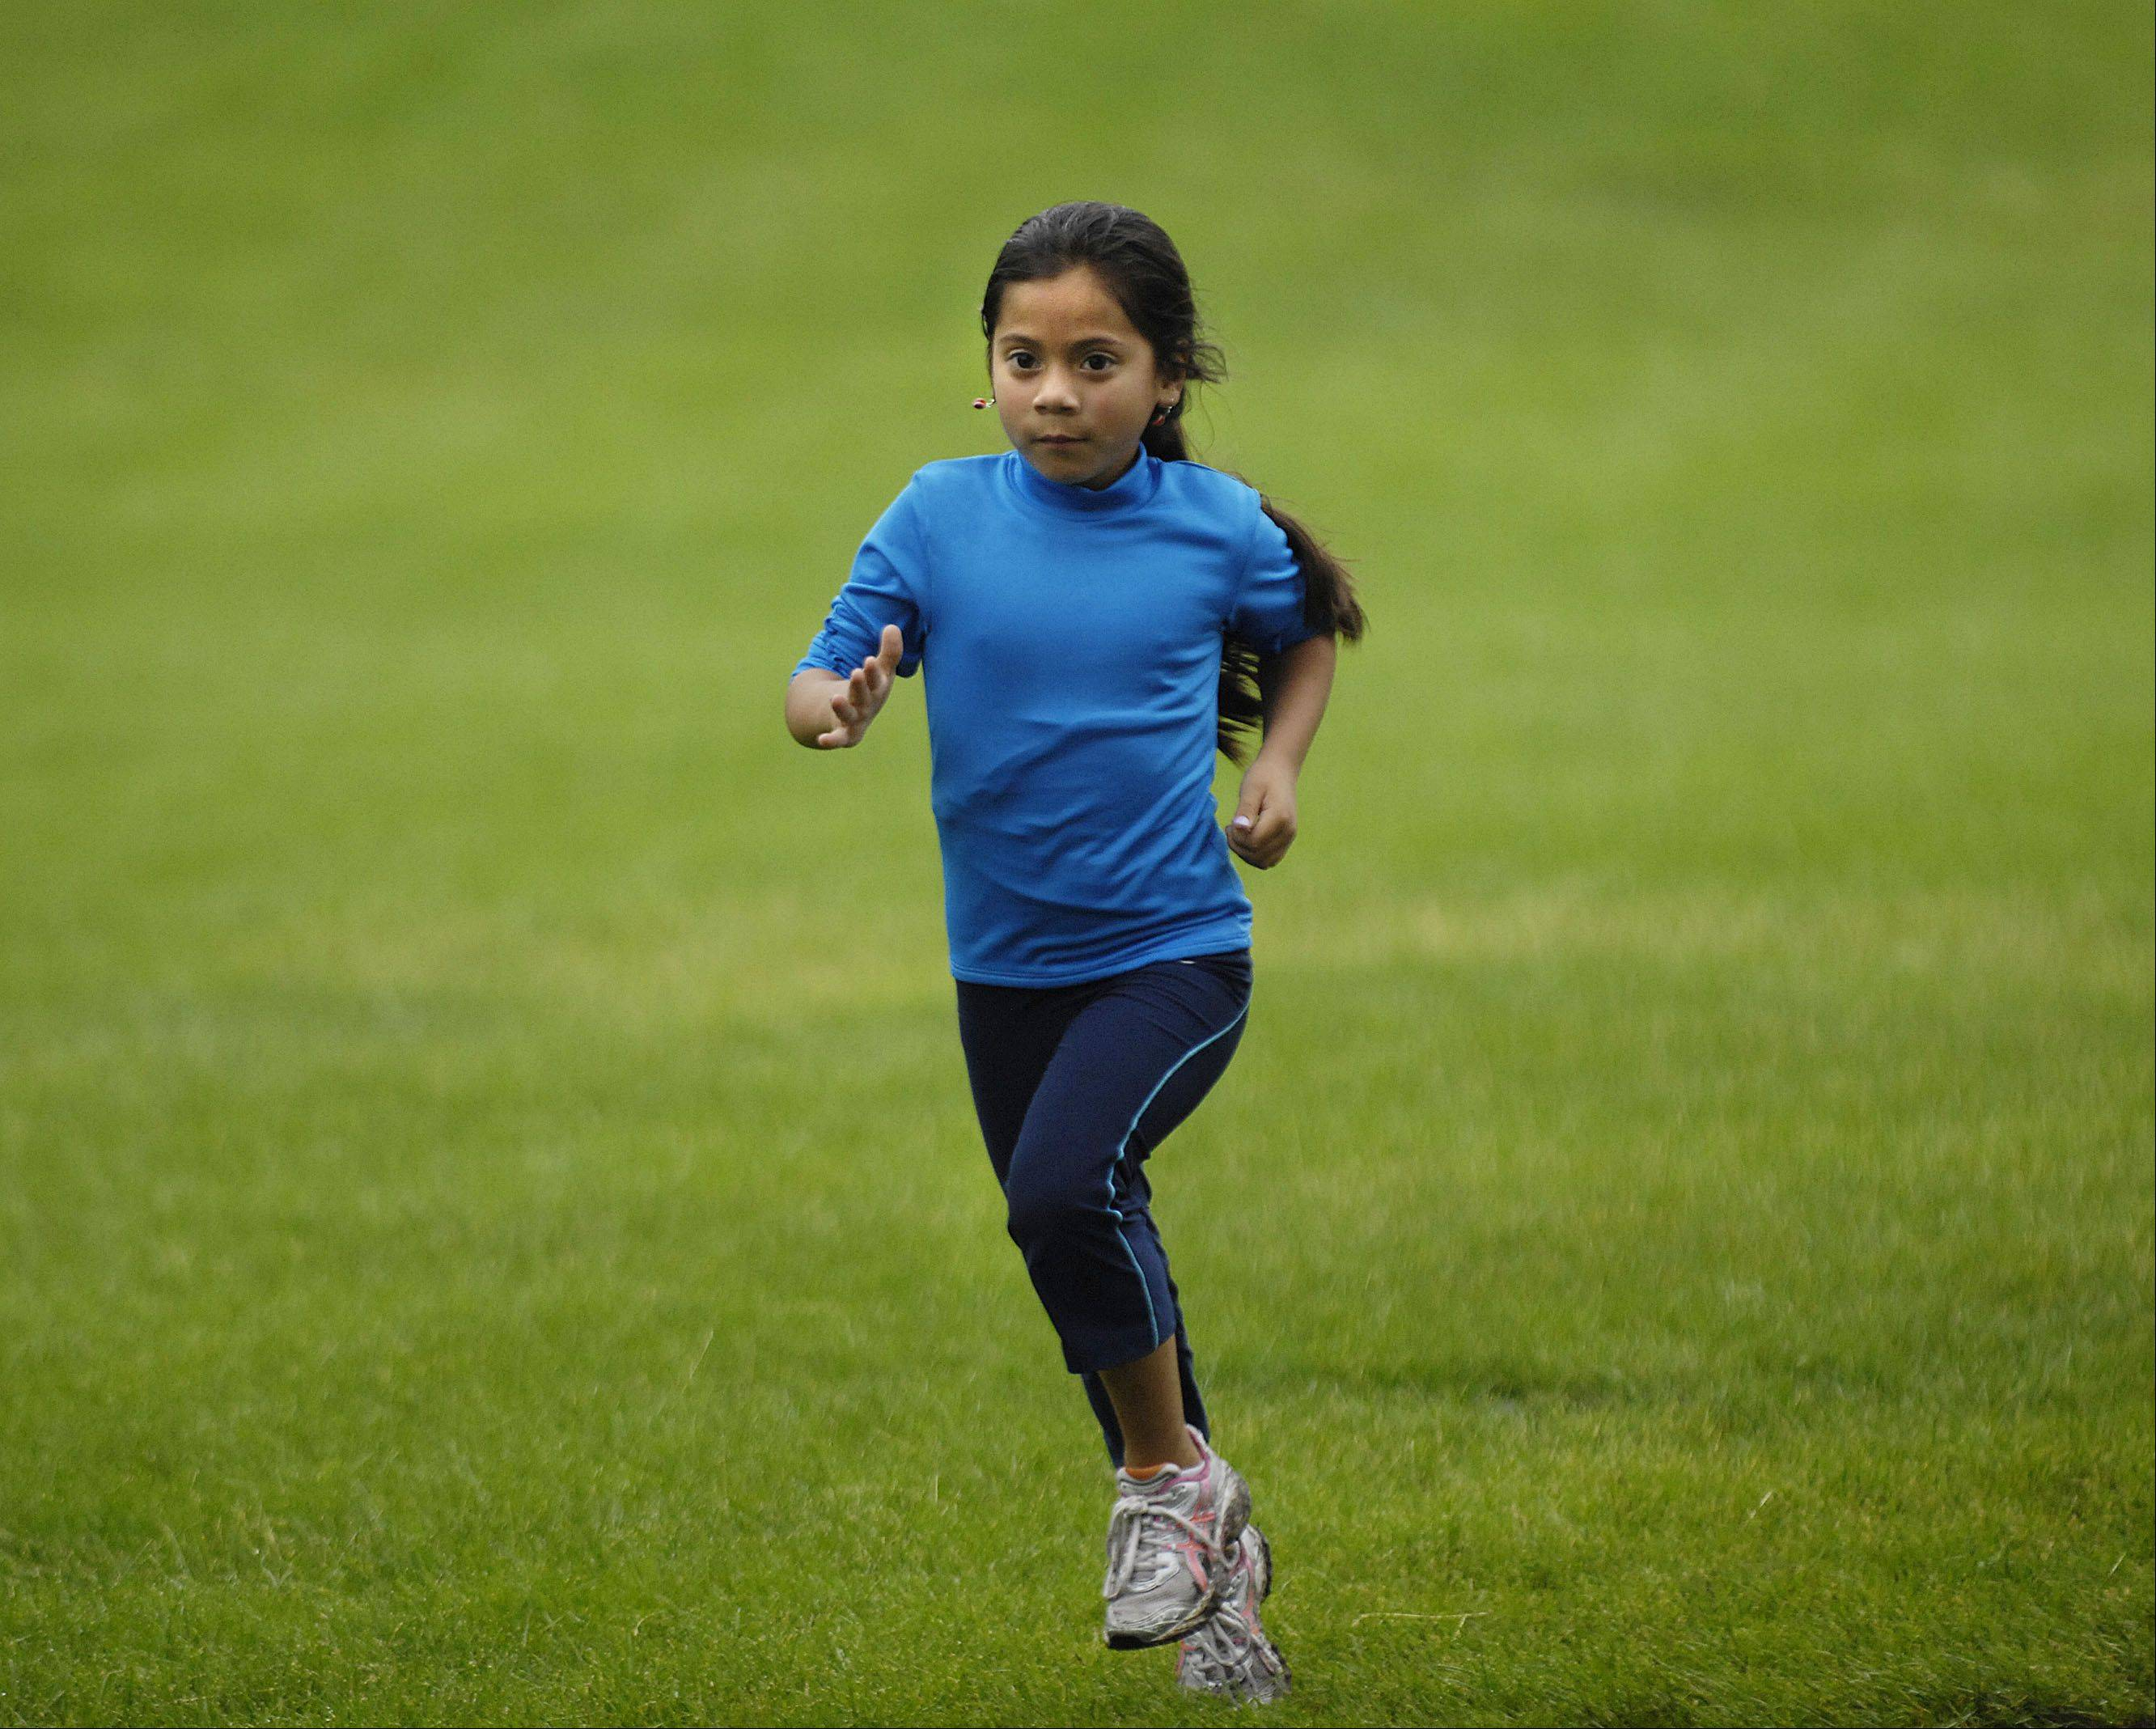 Dandrea Delgado, 7, runs up to three times weekly with the Elgin Sharks running club at Channing Park in Elgin.